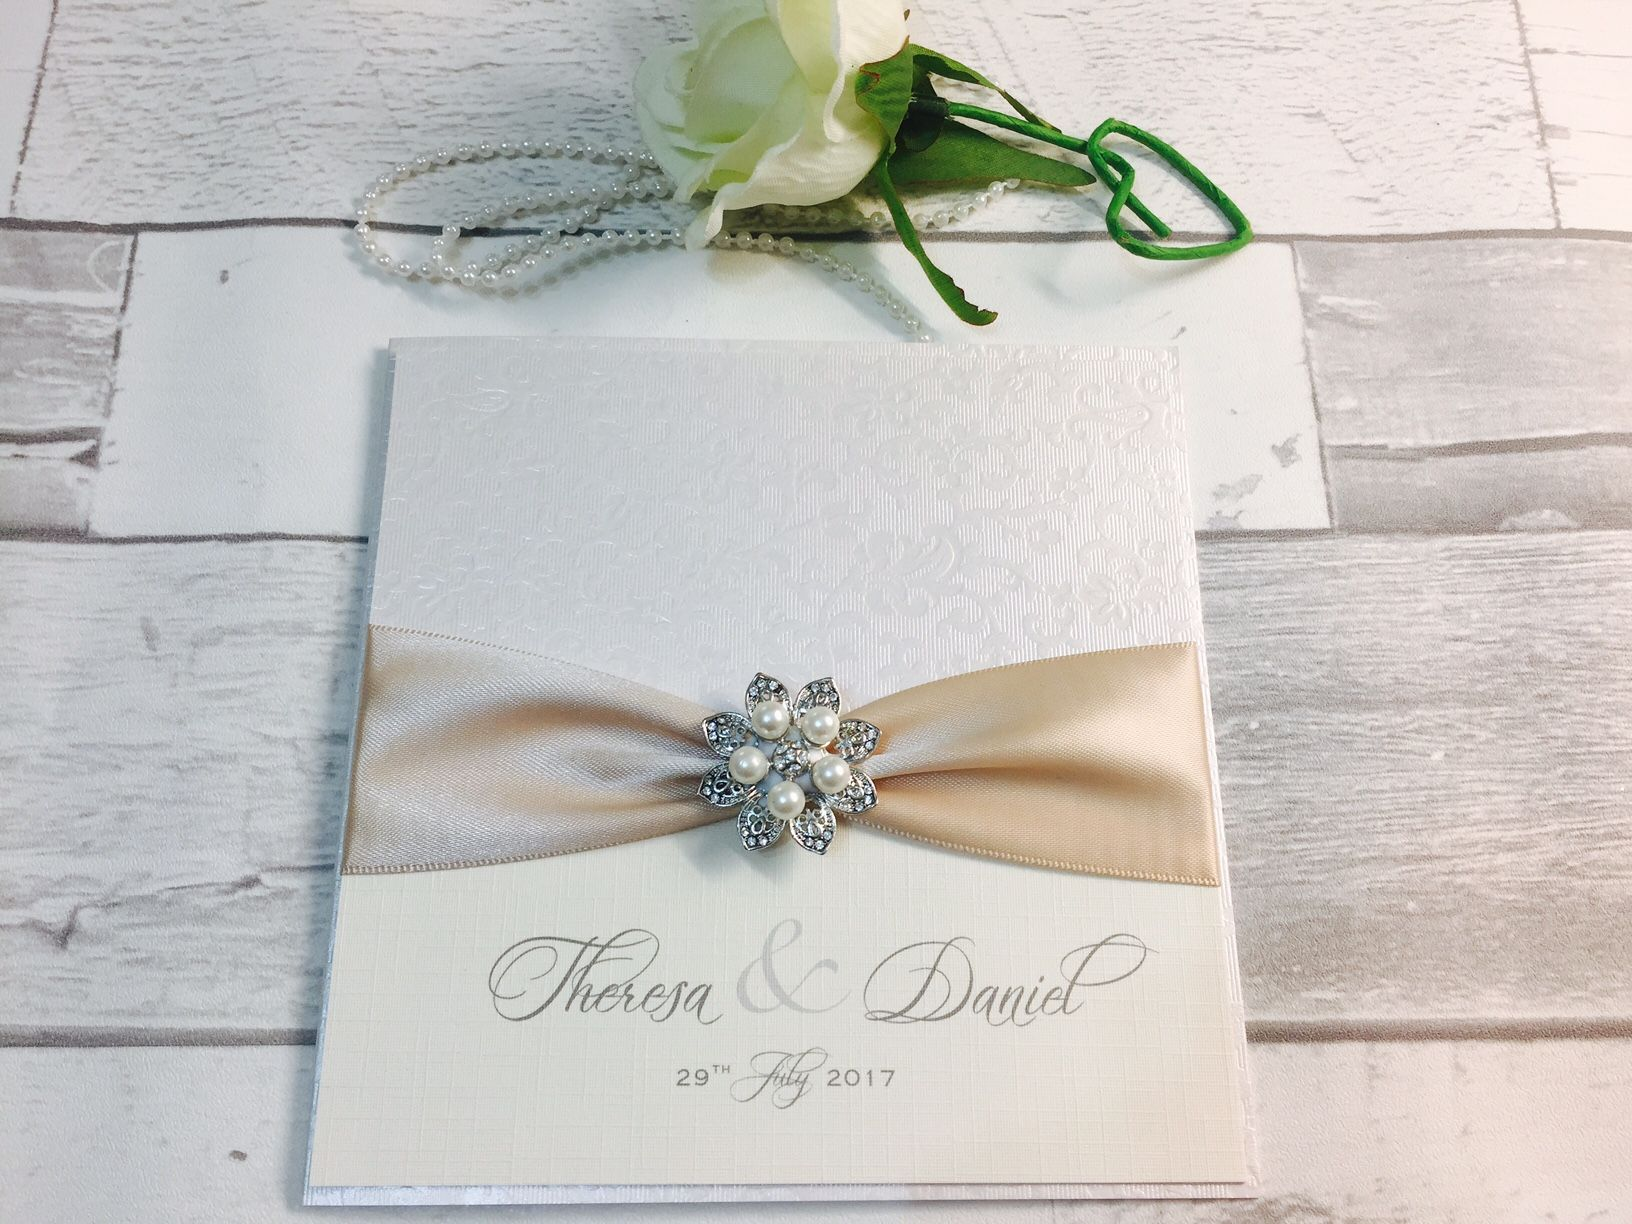 Pretty wedding invitations with brooches and ribbons amor designs amy pearl stopboris Gallery